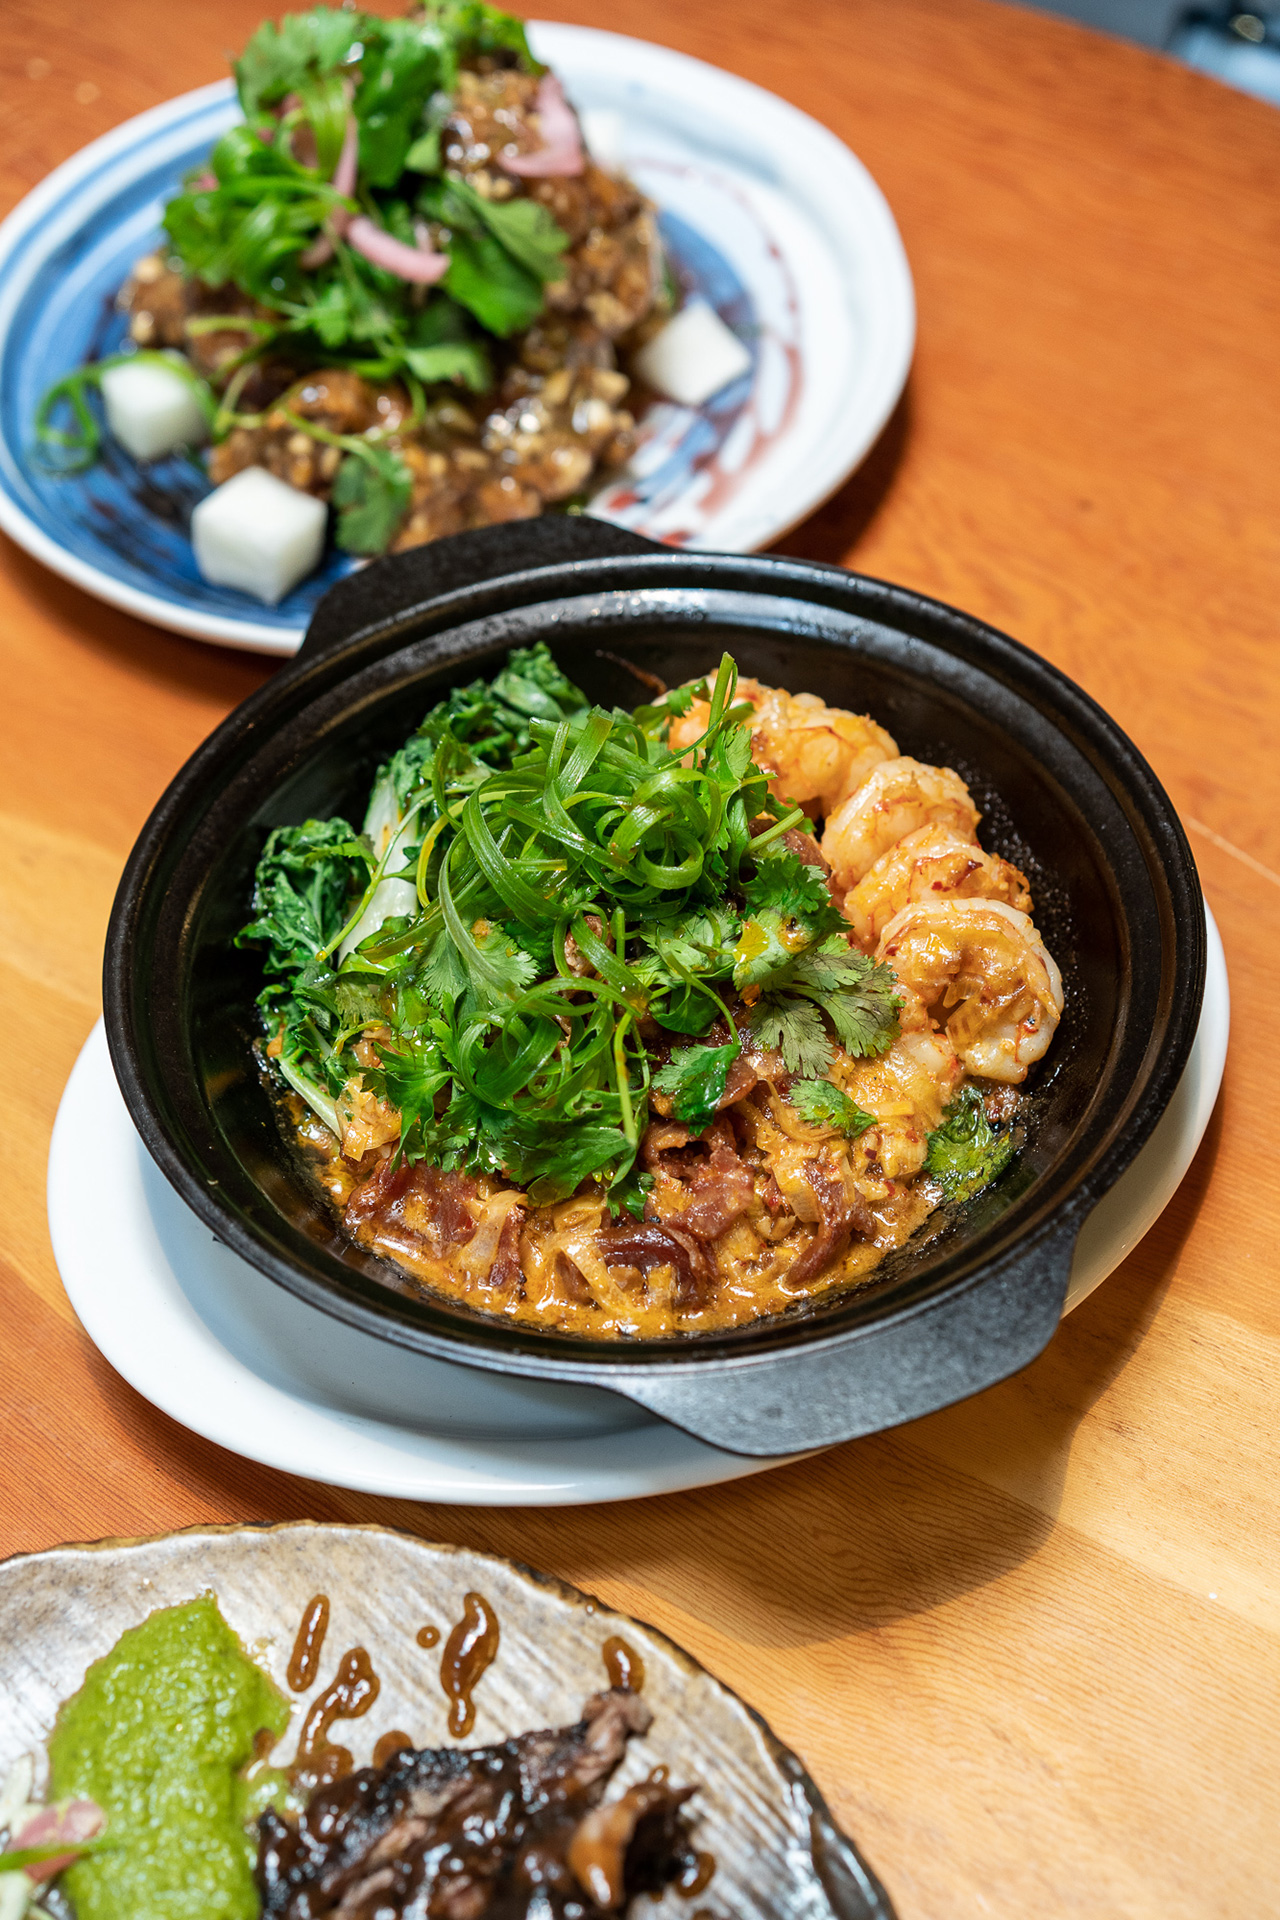 Chinese Paella - a must try at Sai Woo.